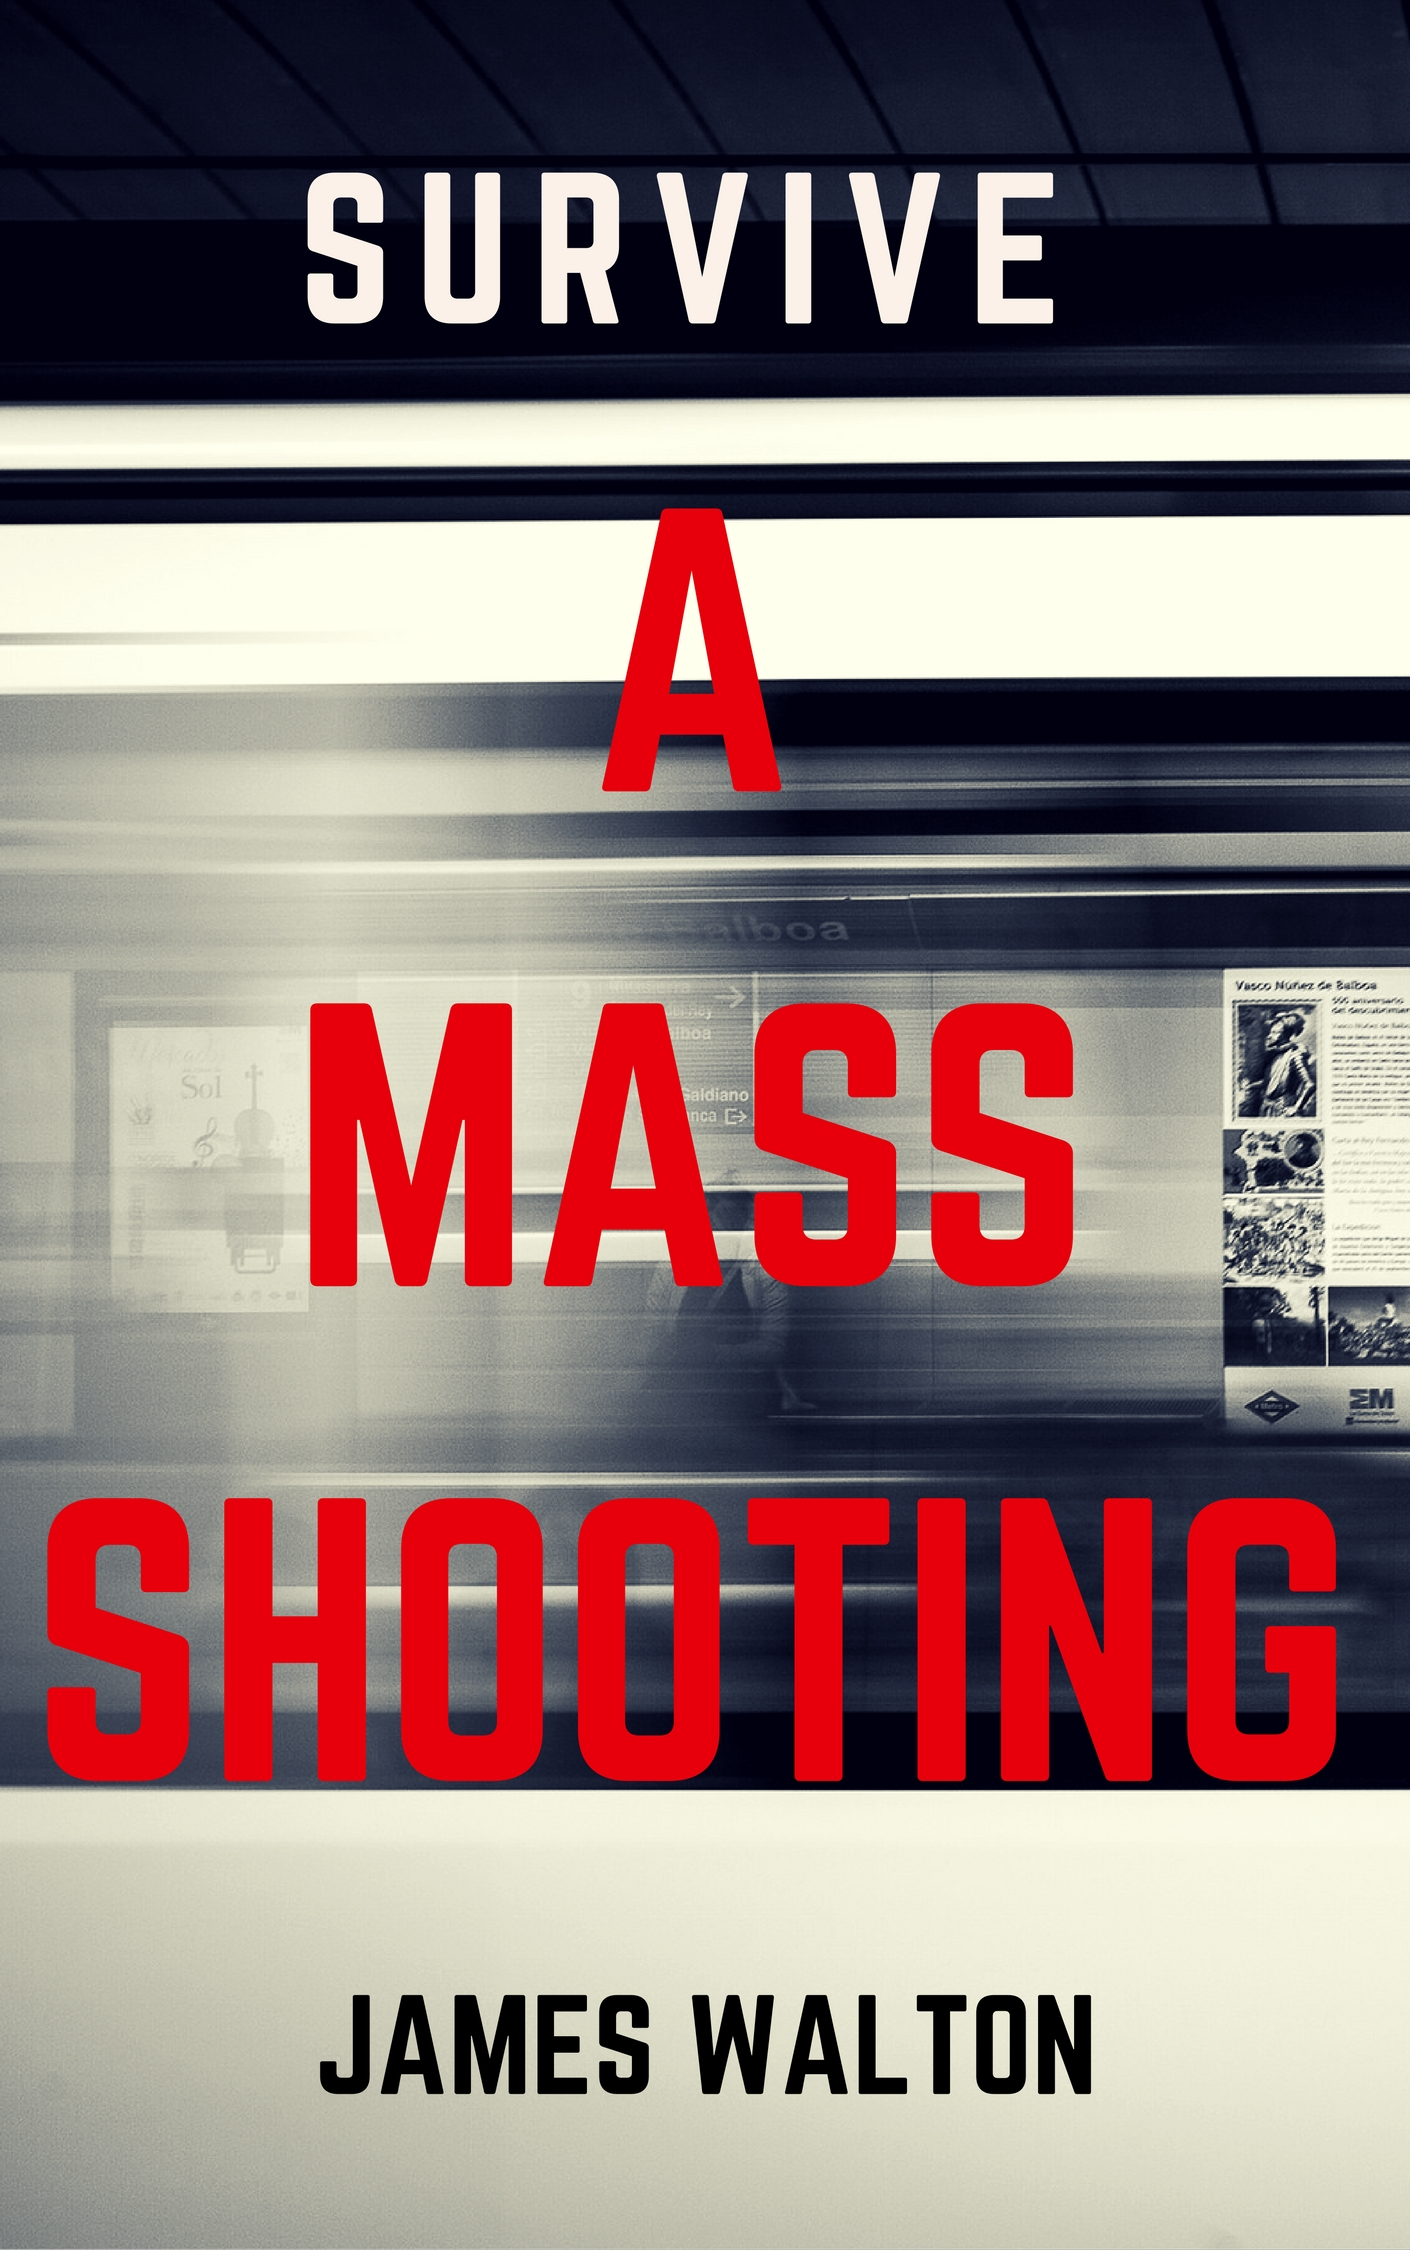 a-mass-shooting1